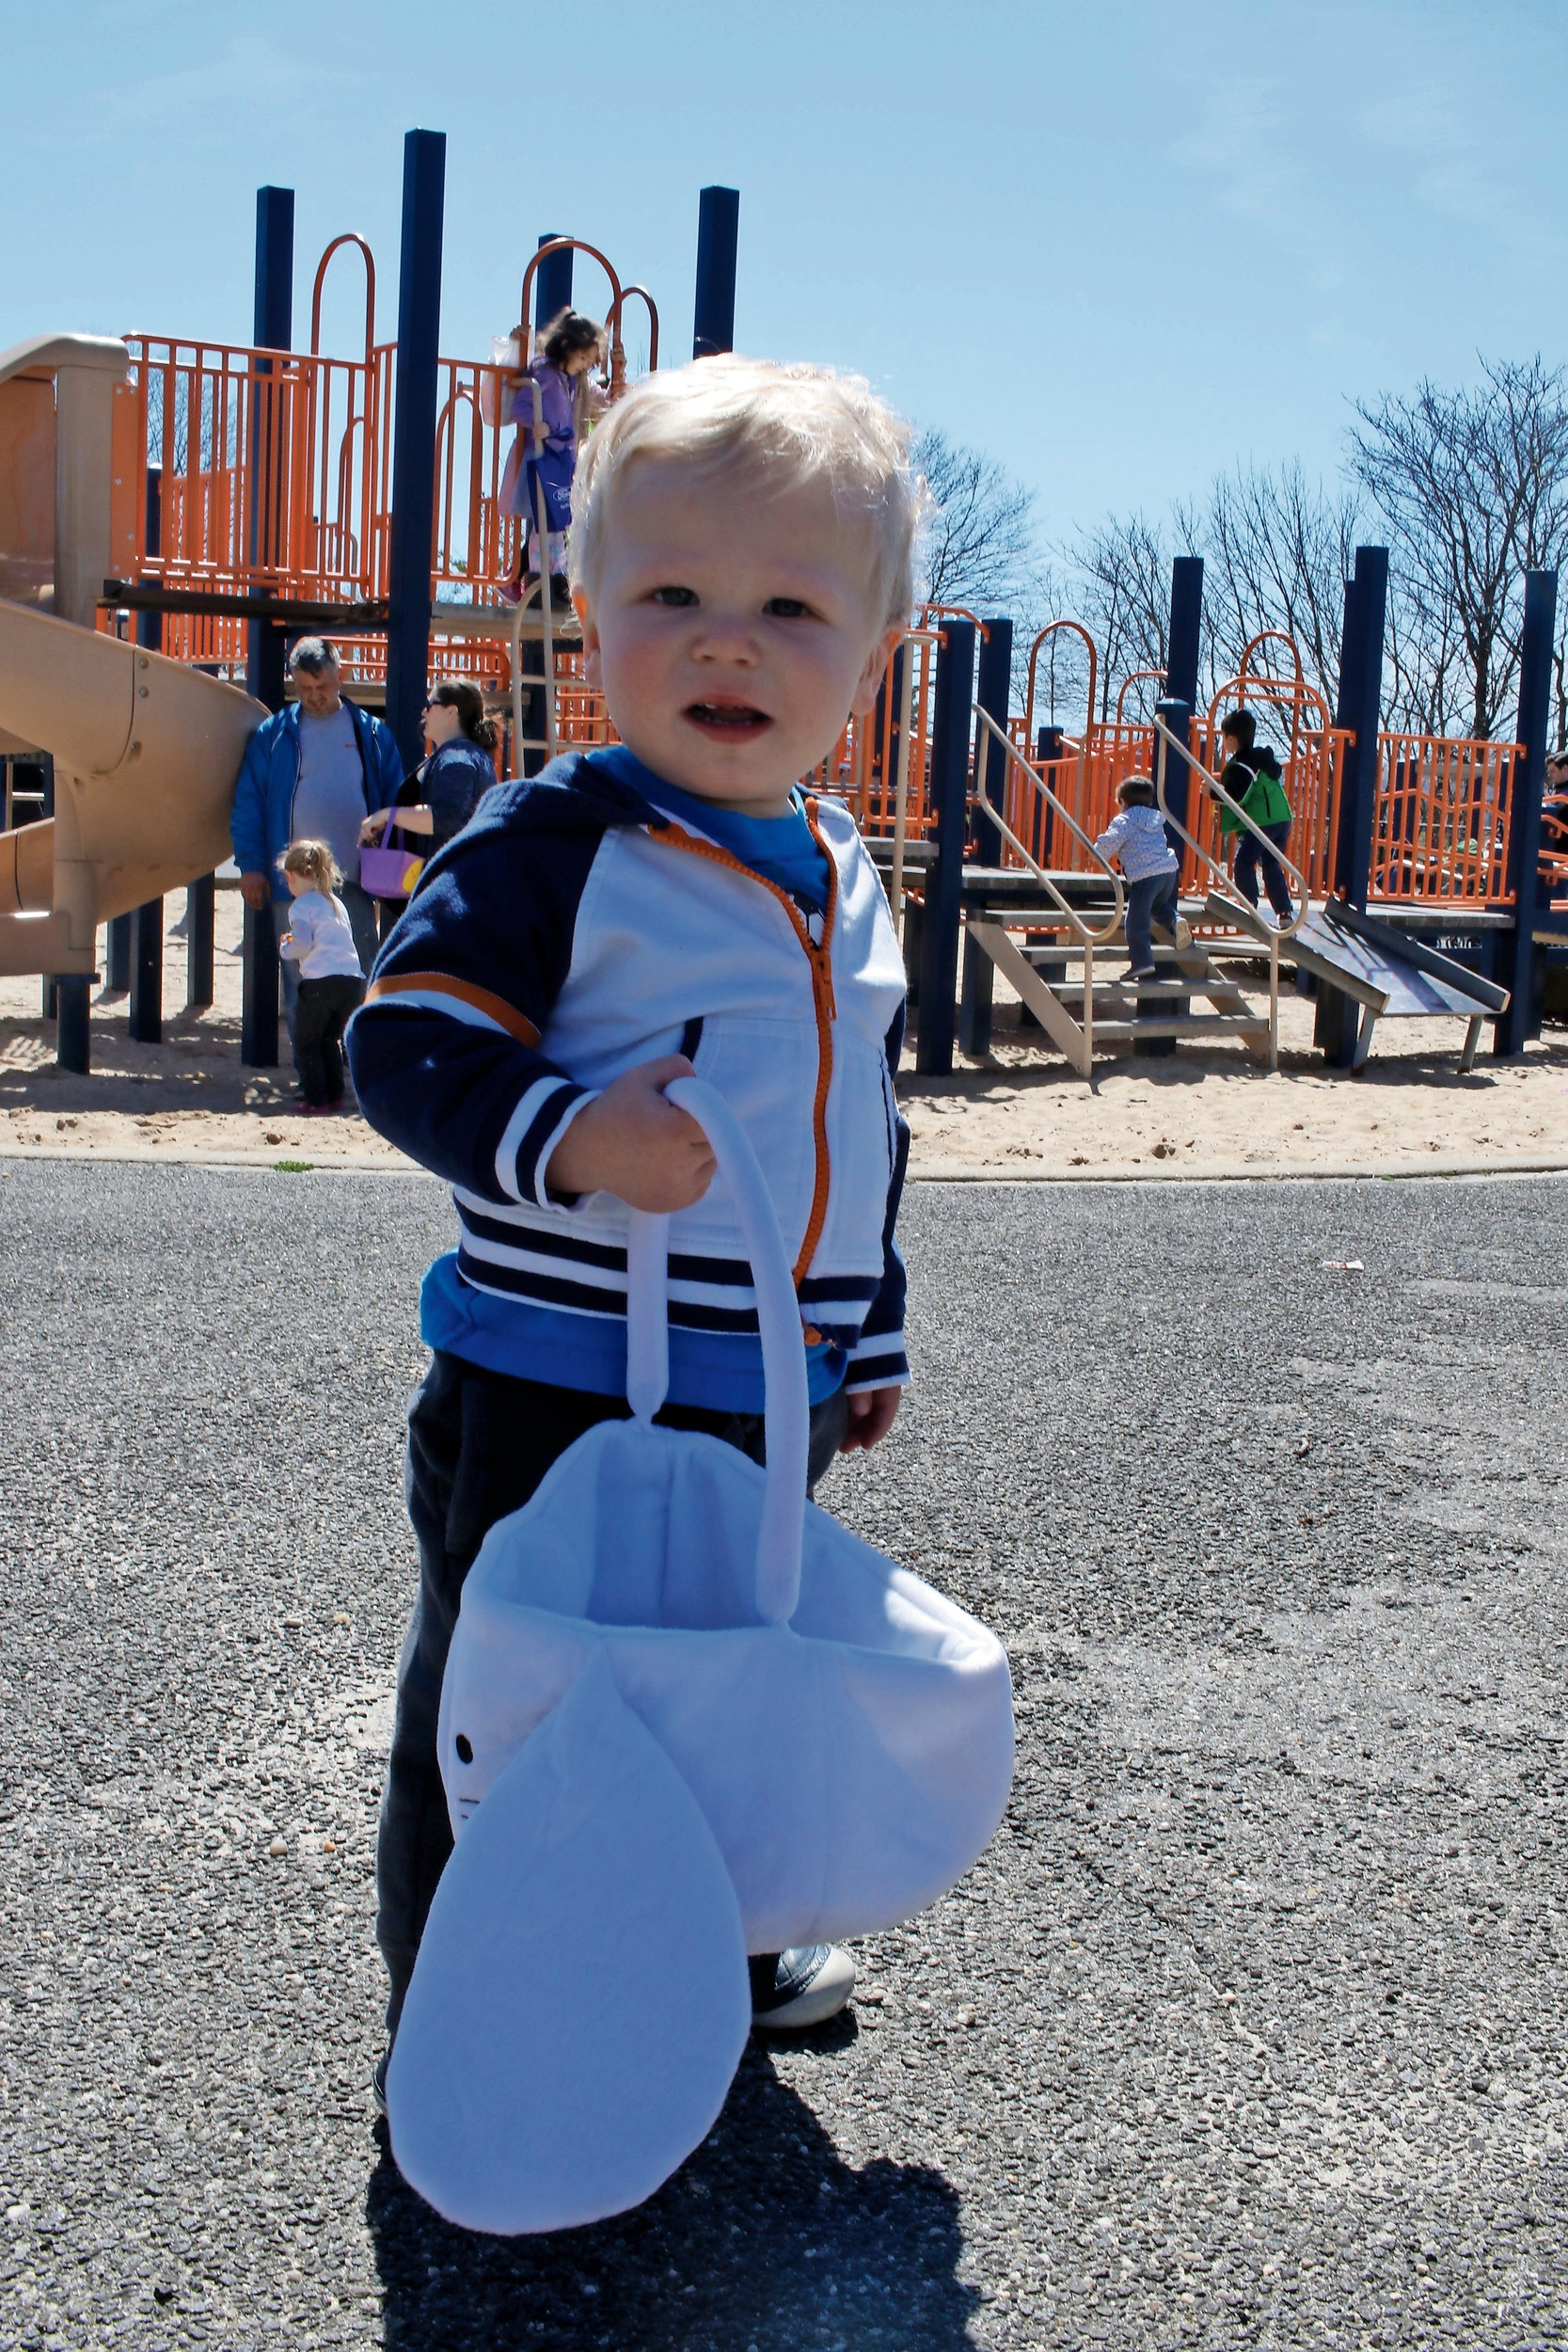 With a basket almost as big as he is, Tyler Troccoli, 15 months old, enjoyed his first egg hunt.